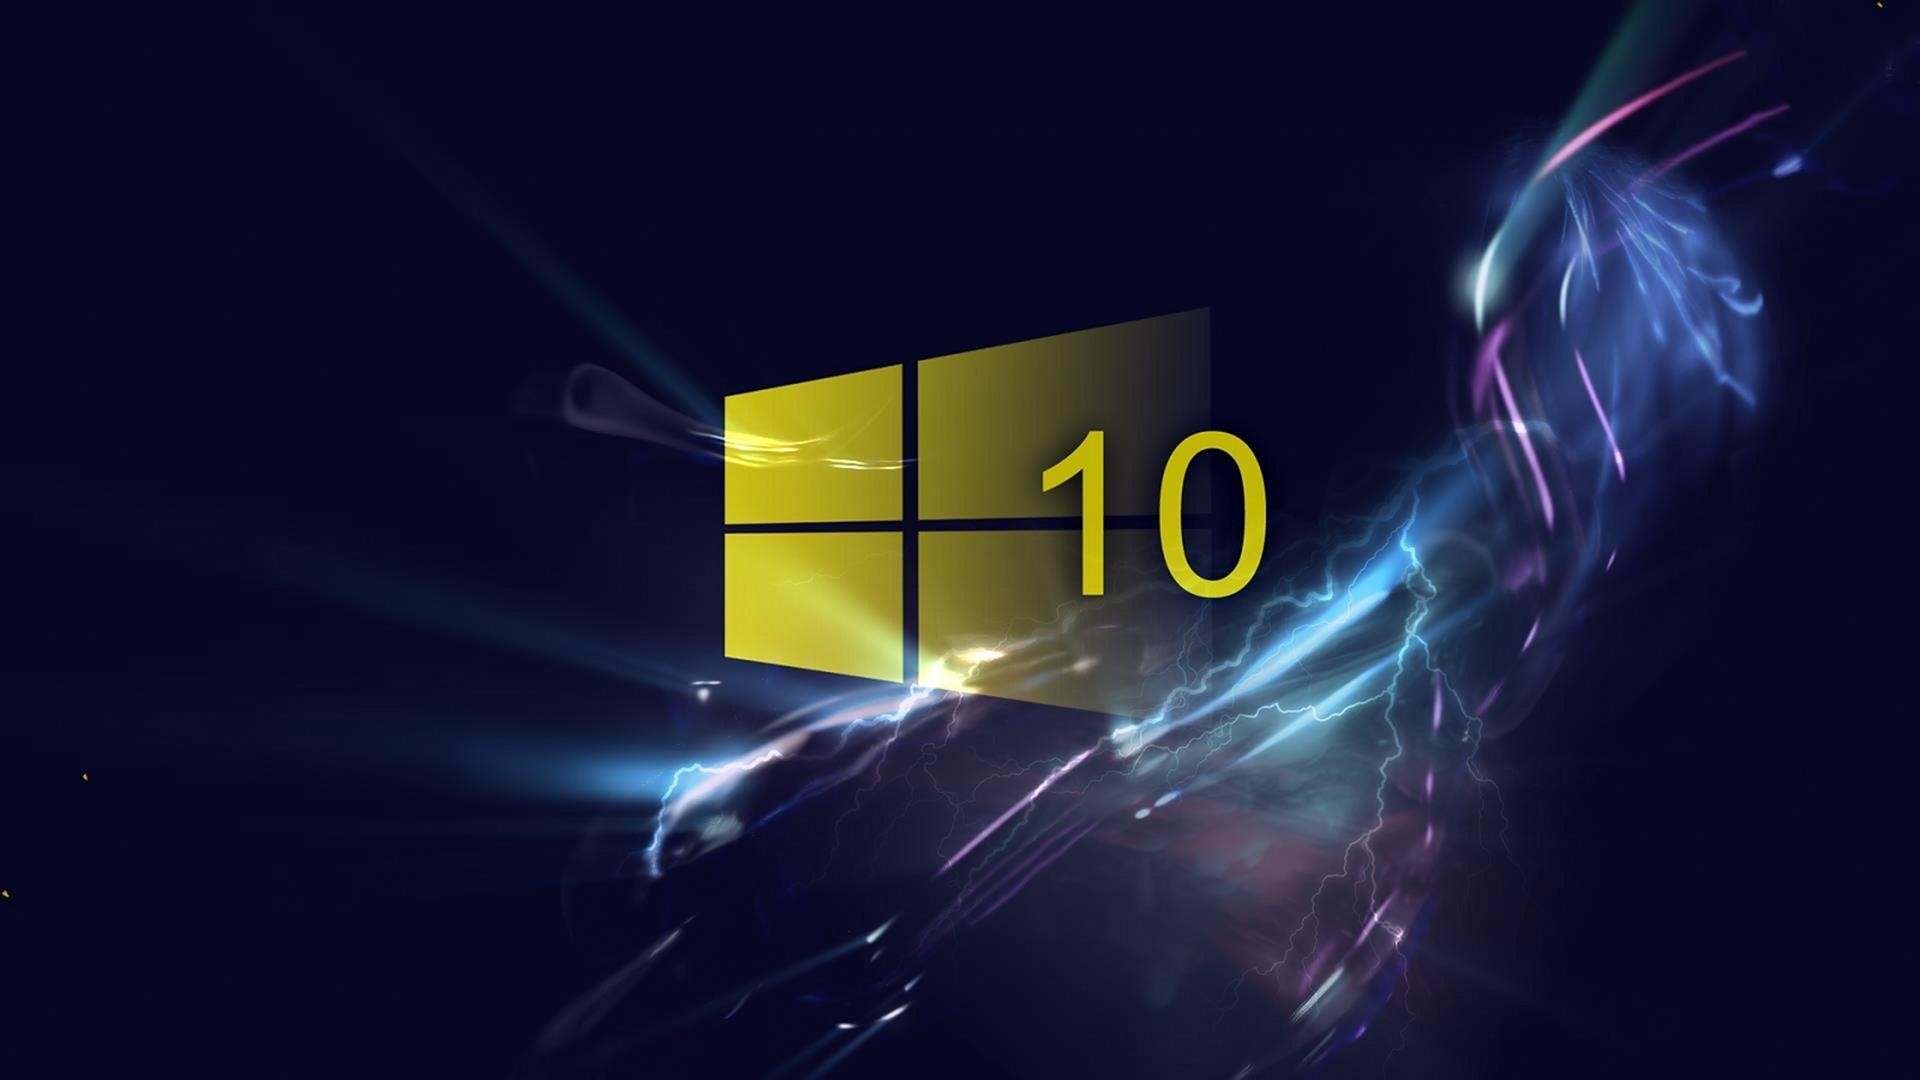 Download 3d Animated Wallpapers For Windows 8 Wallpaper For Windows 10 Desktop 80 Images